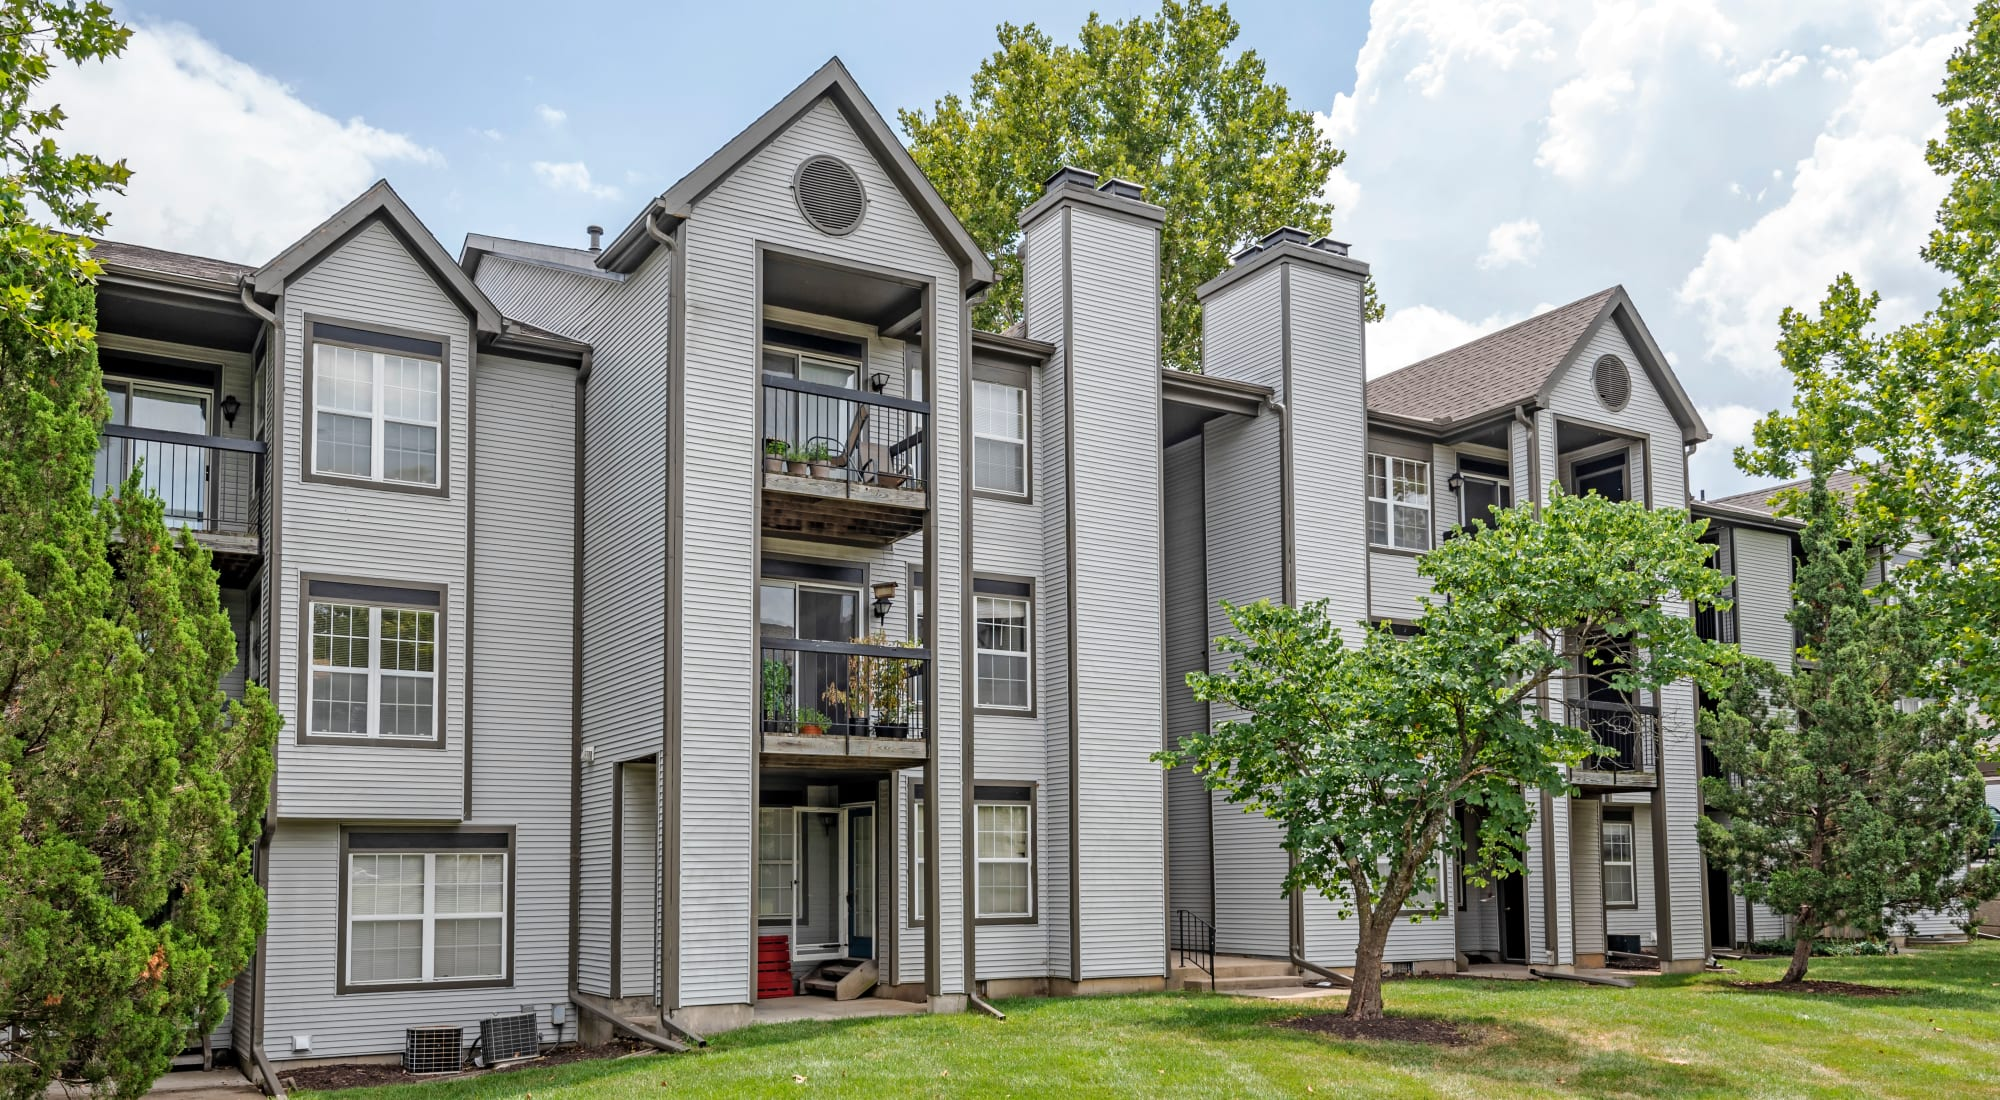 Apply to live at Coach House Apartments in Kansas City, Missouri